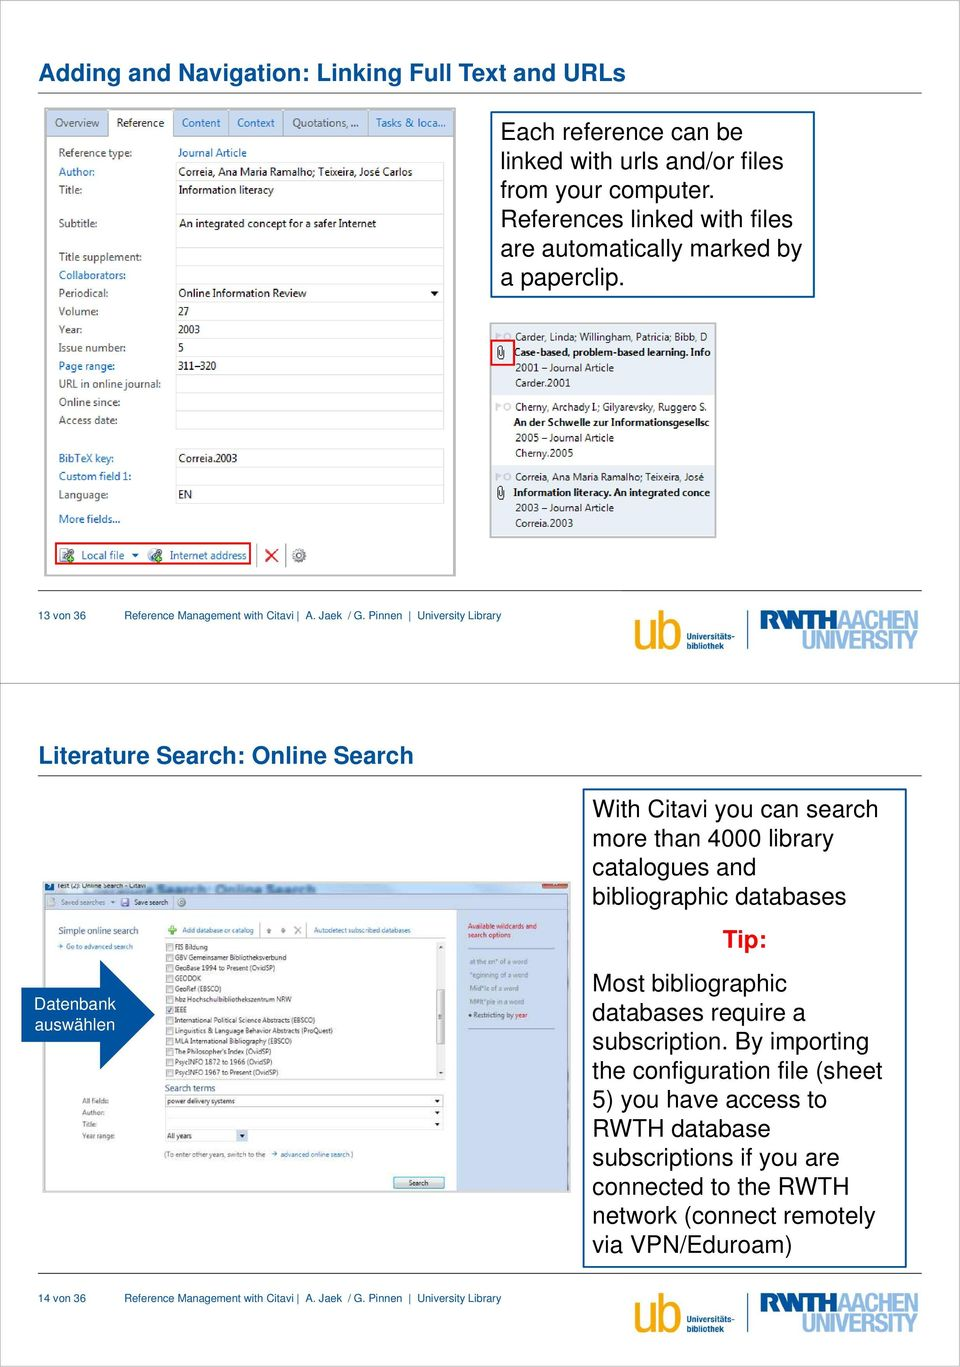 13 von 36 Literature Search: Online Search Datenbank auswählen With Citavi you can search more than 4000 library catalogues and bibliographic